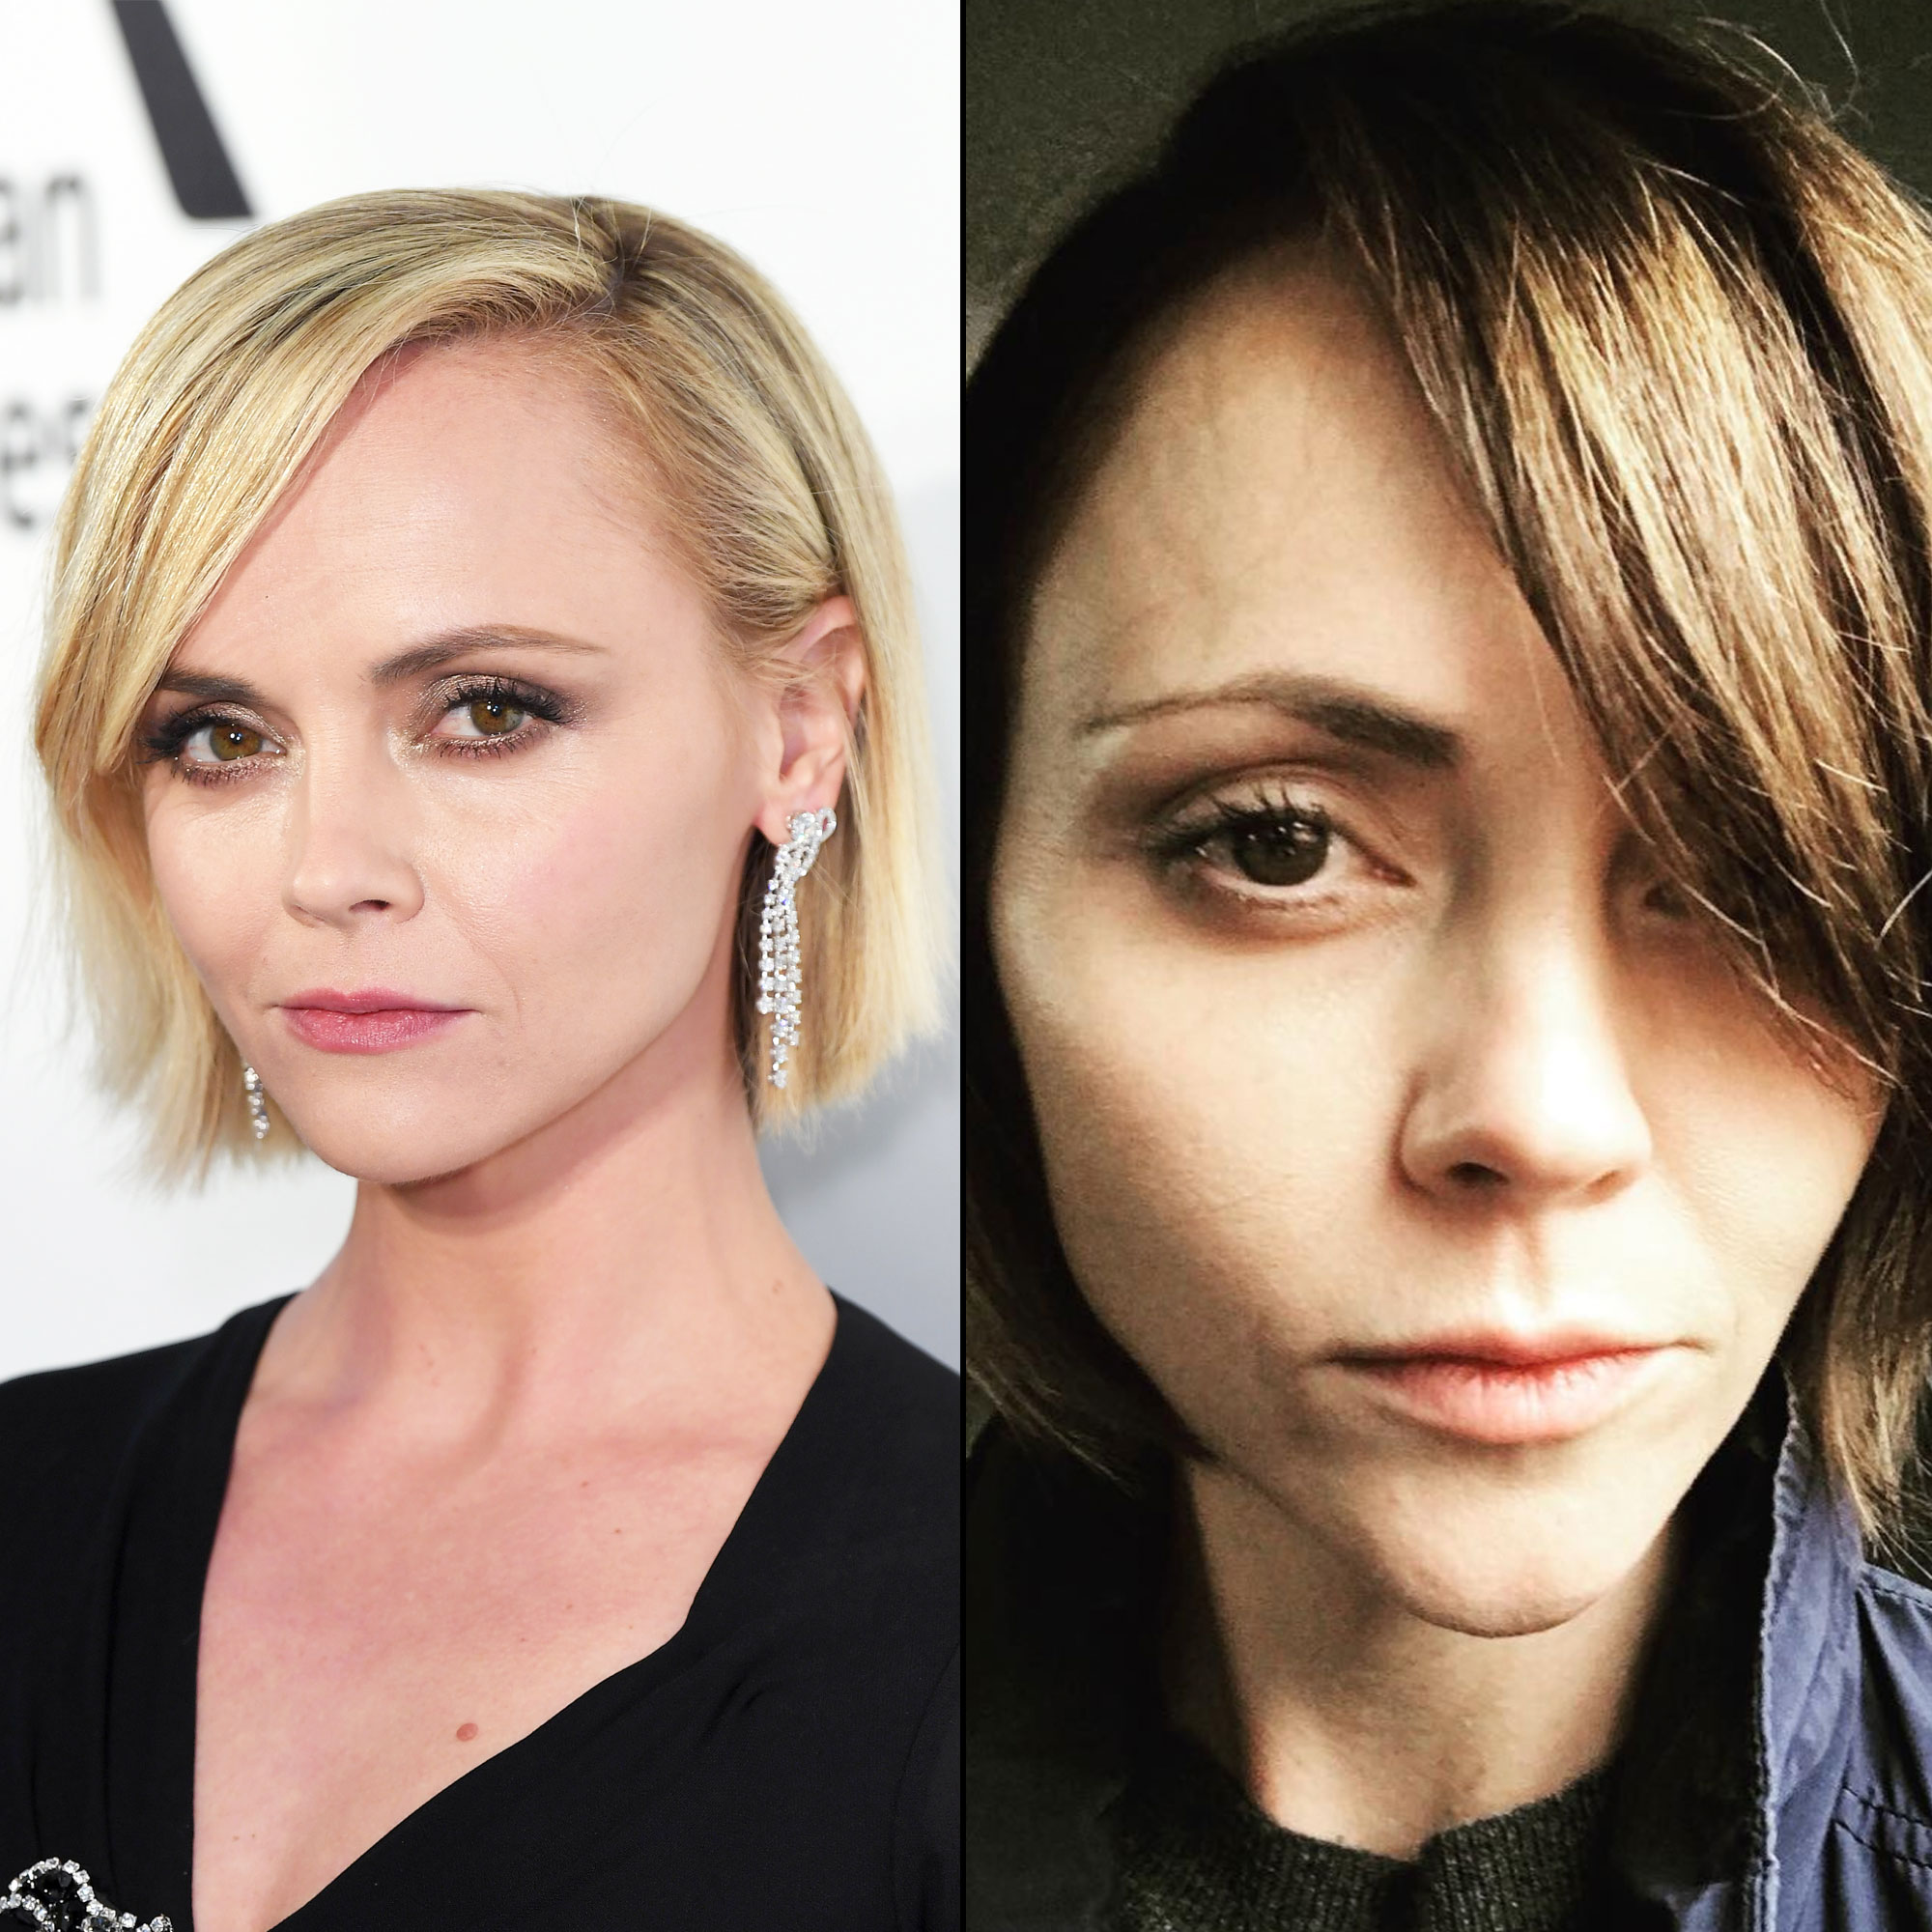 """Christina Ricci's Dark 'Do Joins the Year's Best Hair Changes - Spring may be just around the corner, but the actress and her colorist Tracey Cunningham decided to darken things up on Wednesday, March 6. """"Back in Brown 🖤🖤🖤 thank you genius @traceycunningham1,"""" she captioned an Instagram selfie showing off her new 'do."""